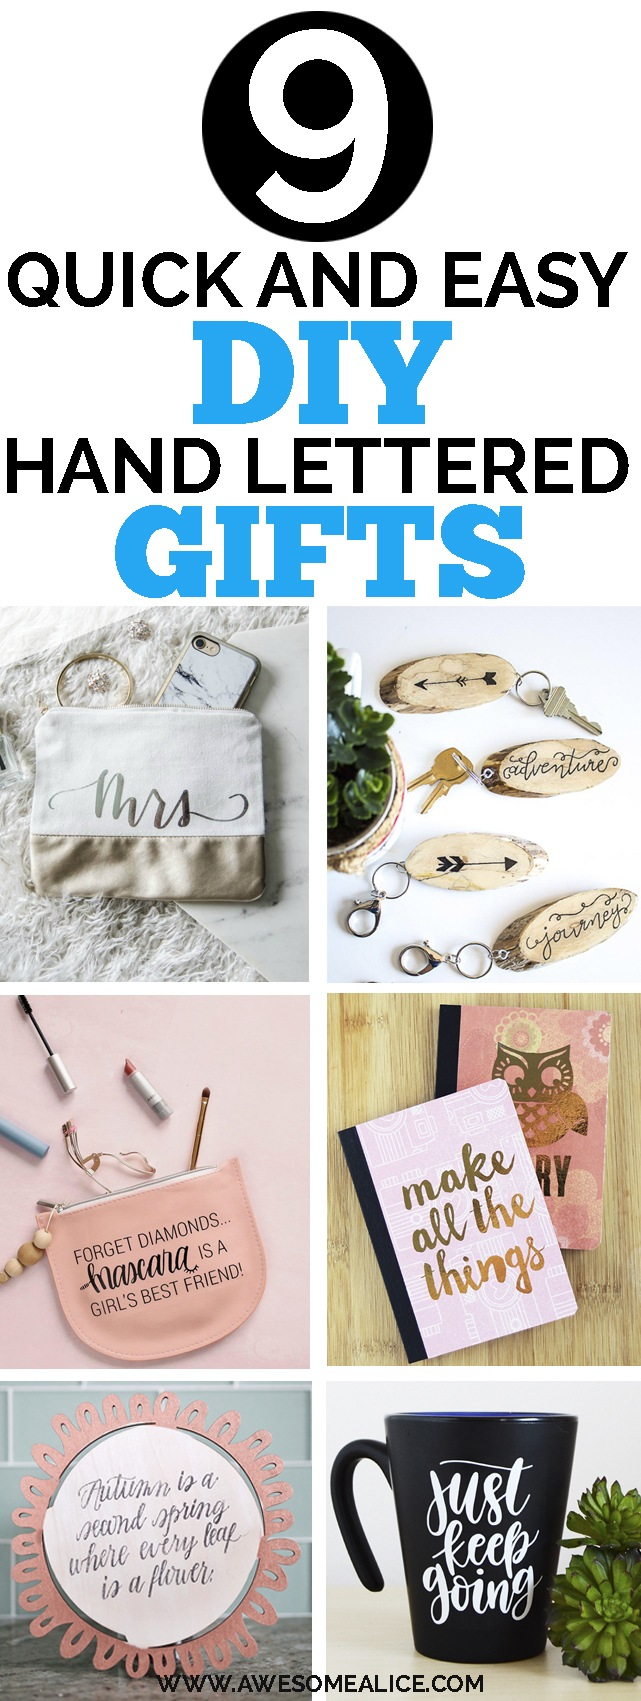 9 Quick And Easy Diy Hand Lettered Gift Ideas Awesome Alice